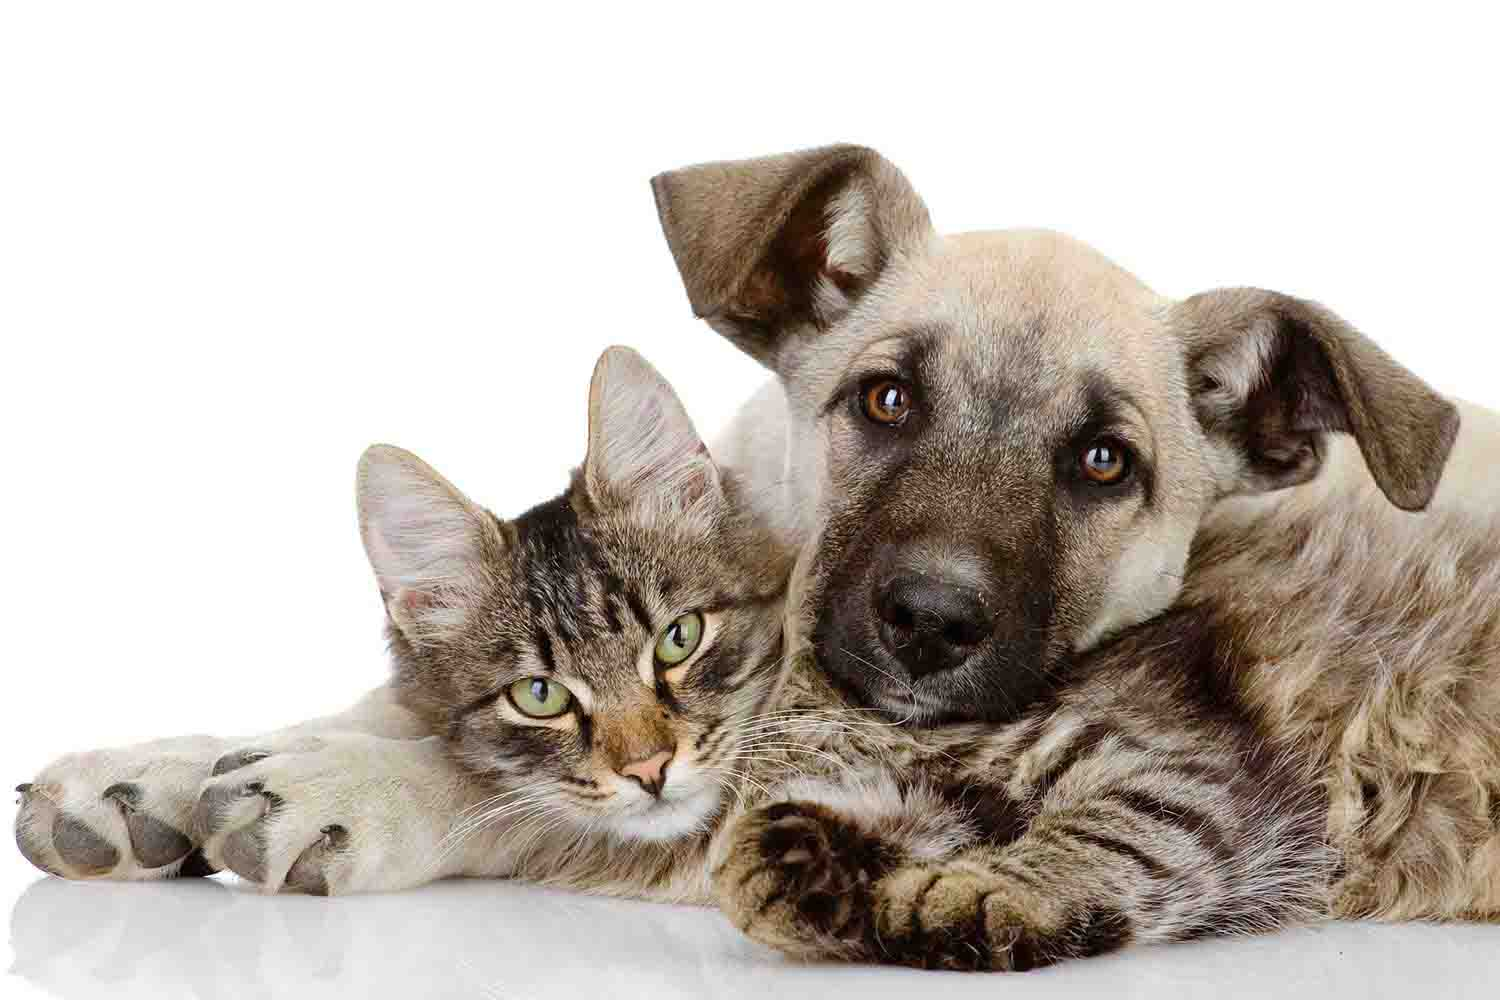 Vet Services for Dogs and Cats